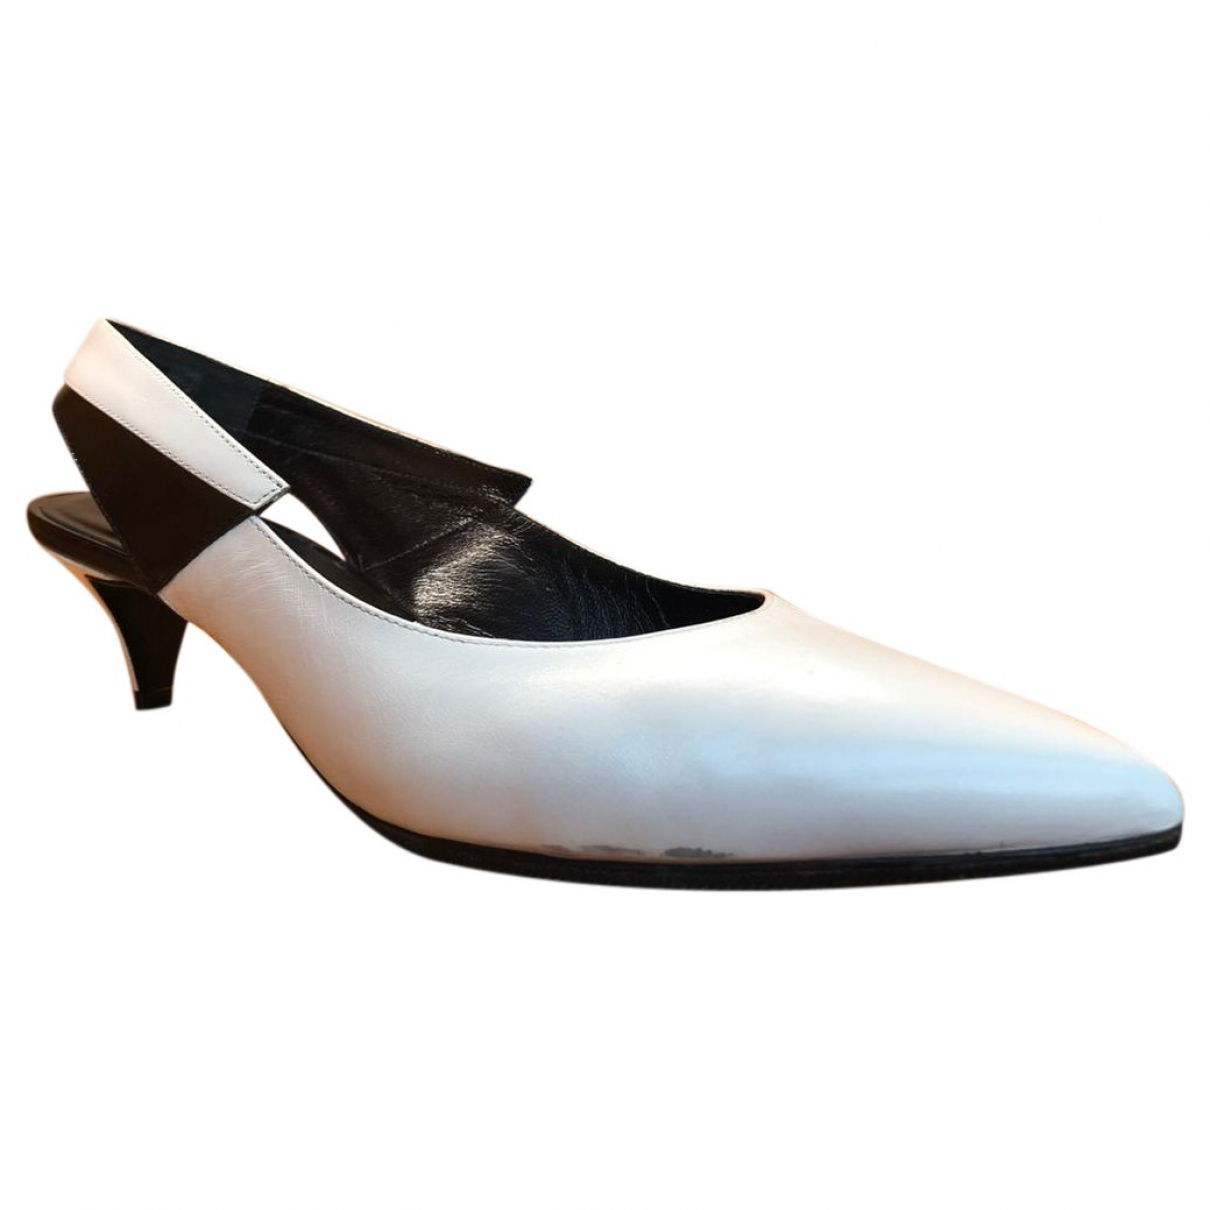 Celine \N White Leather Heels for Women 39.5 EU